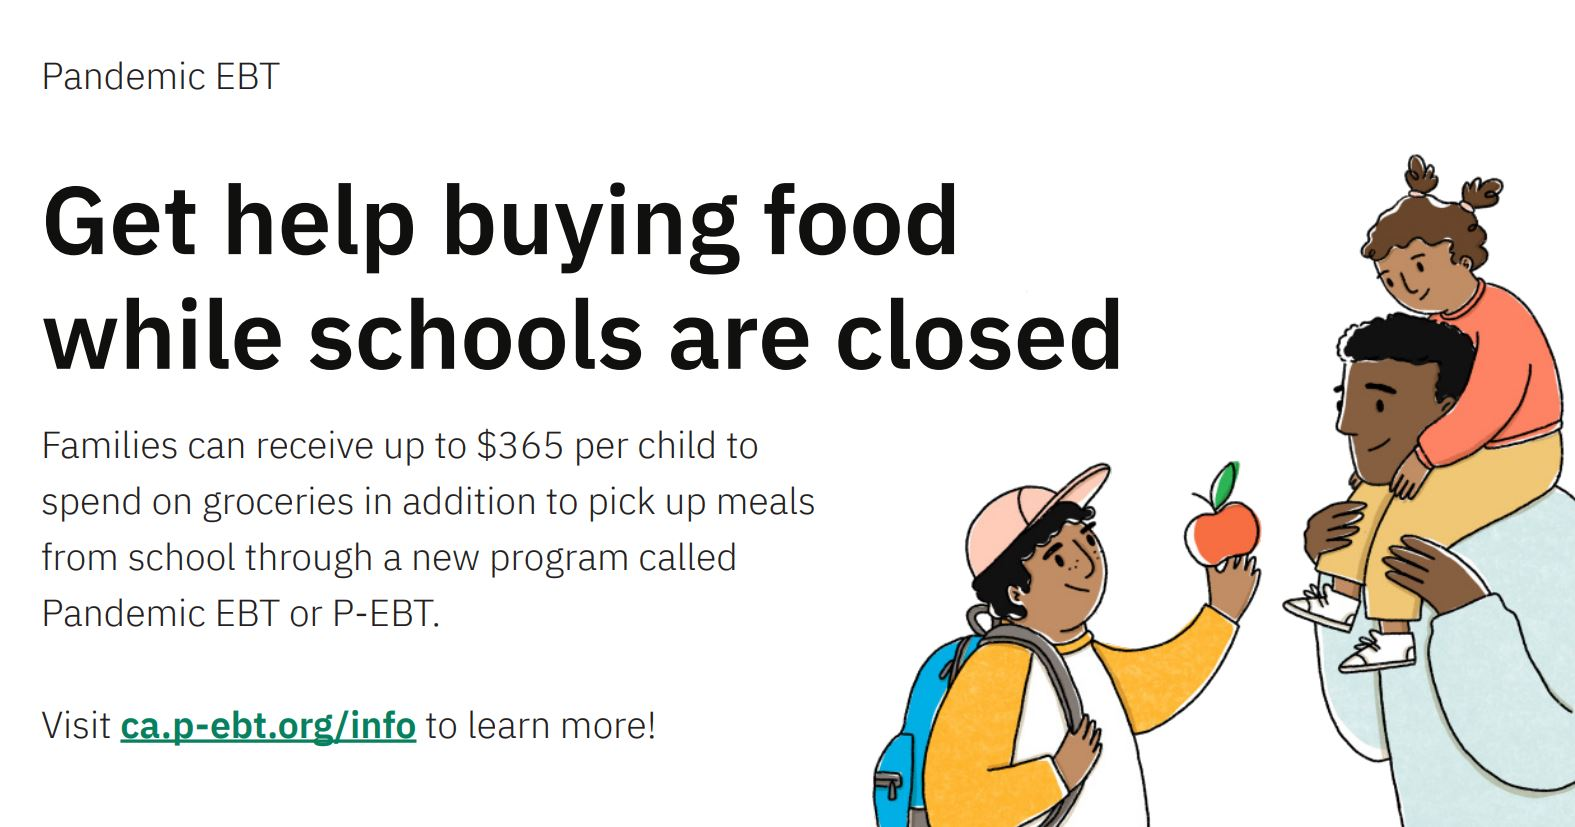 Get help while buying food while schools are closed